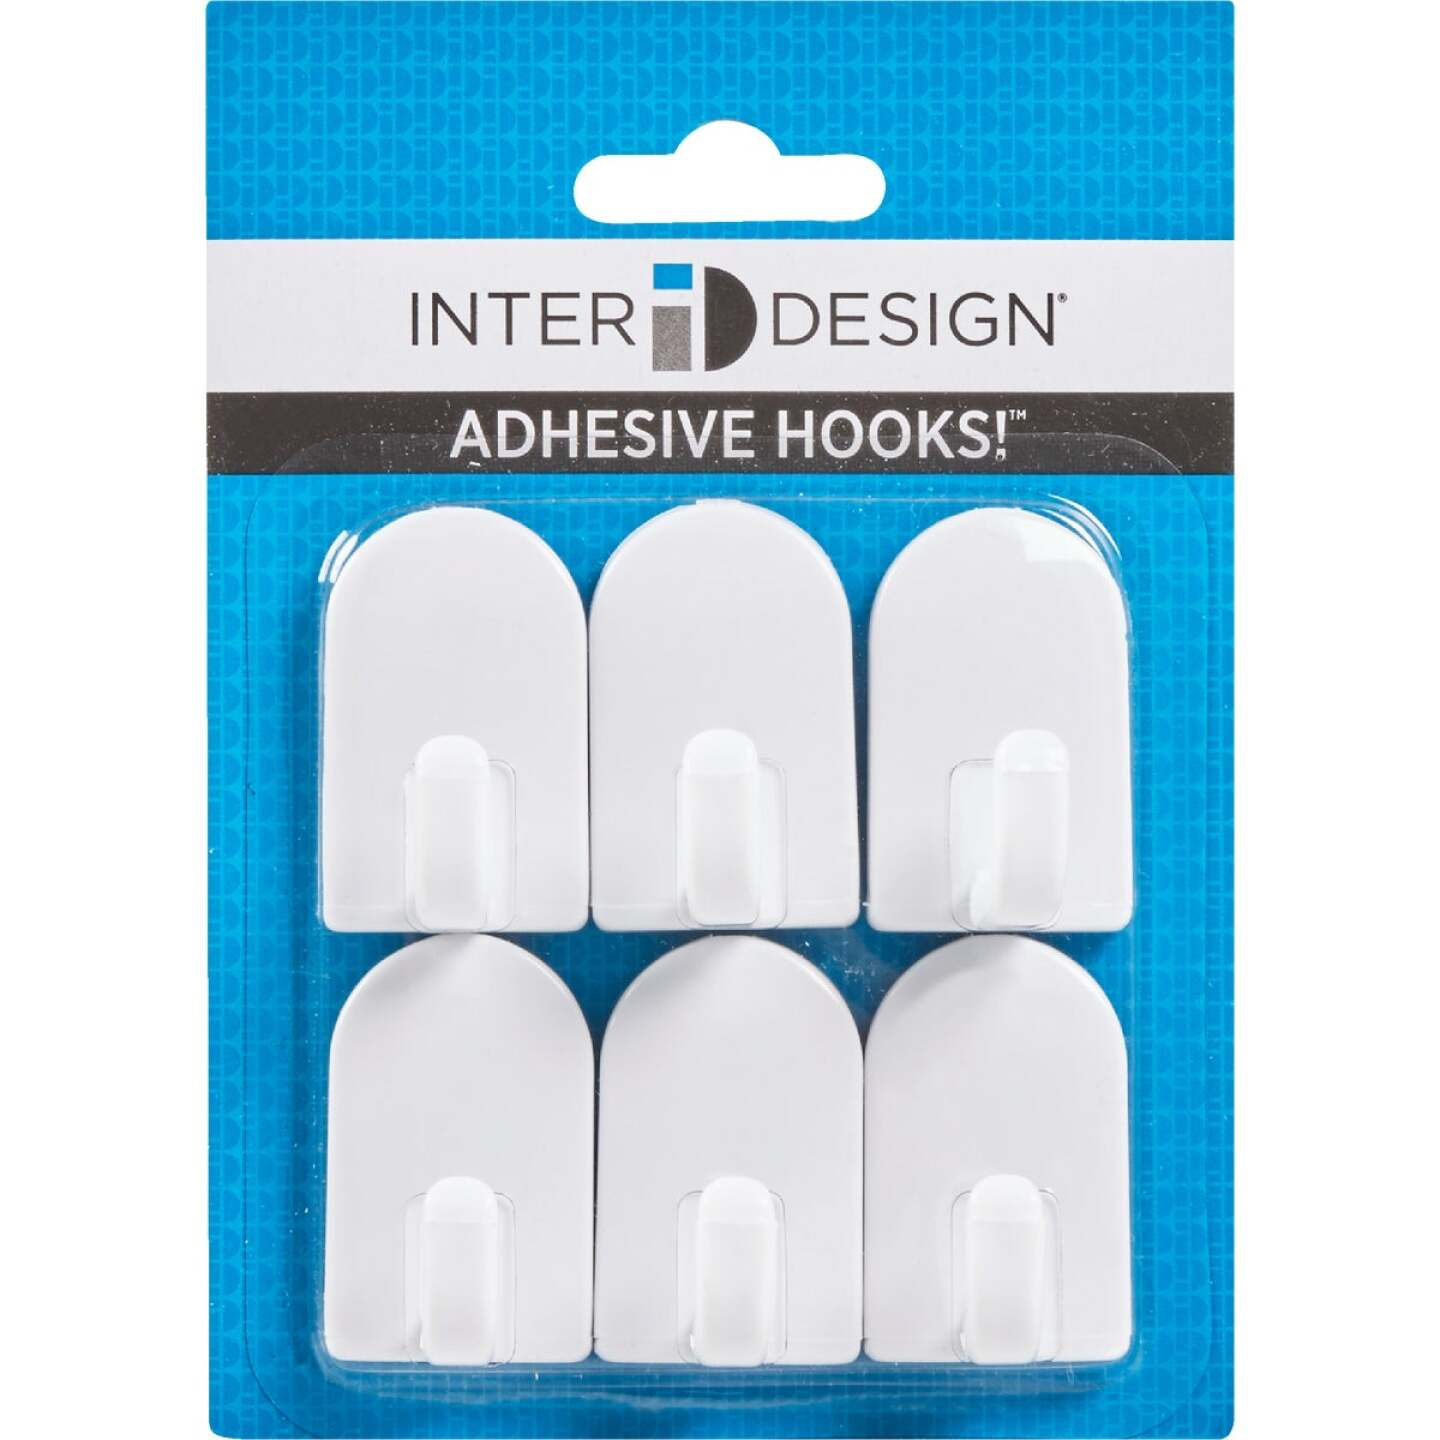 InterDesign Soap Savers Mini White Plastic Adhesive Hook (2-Pack) Image 2